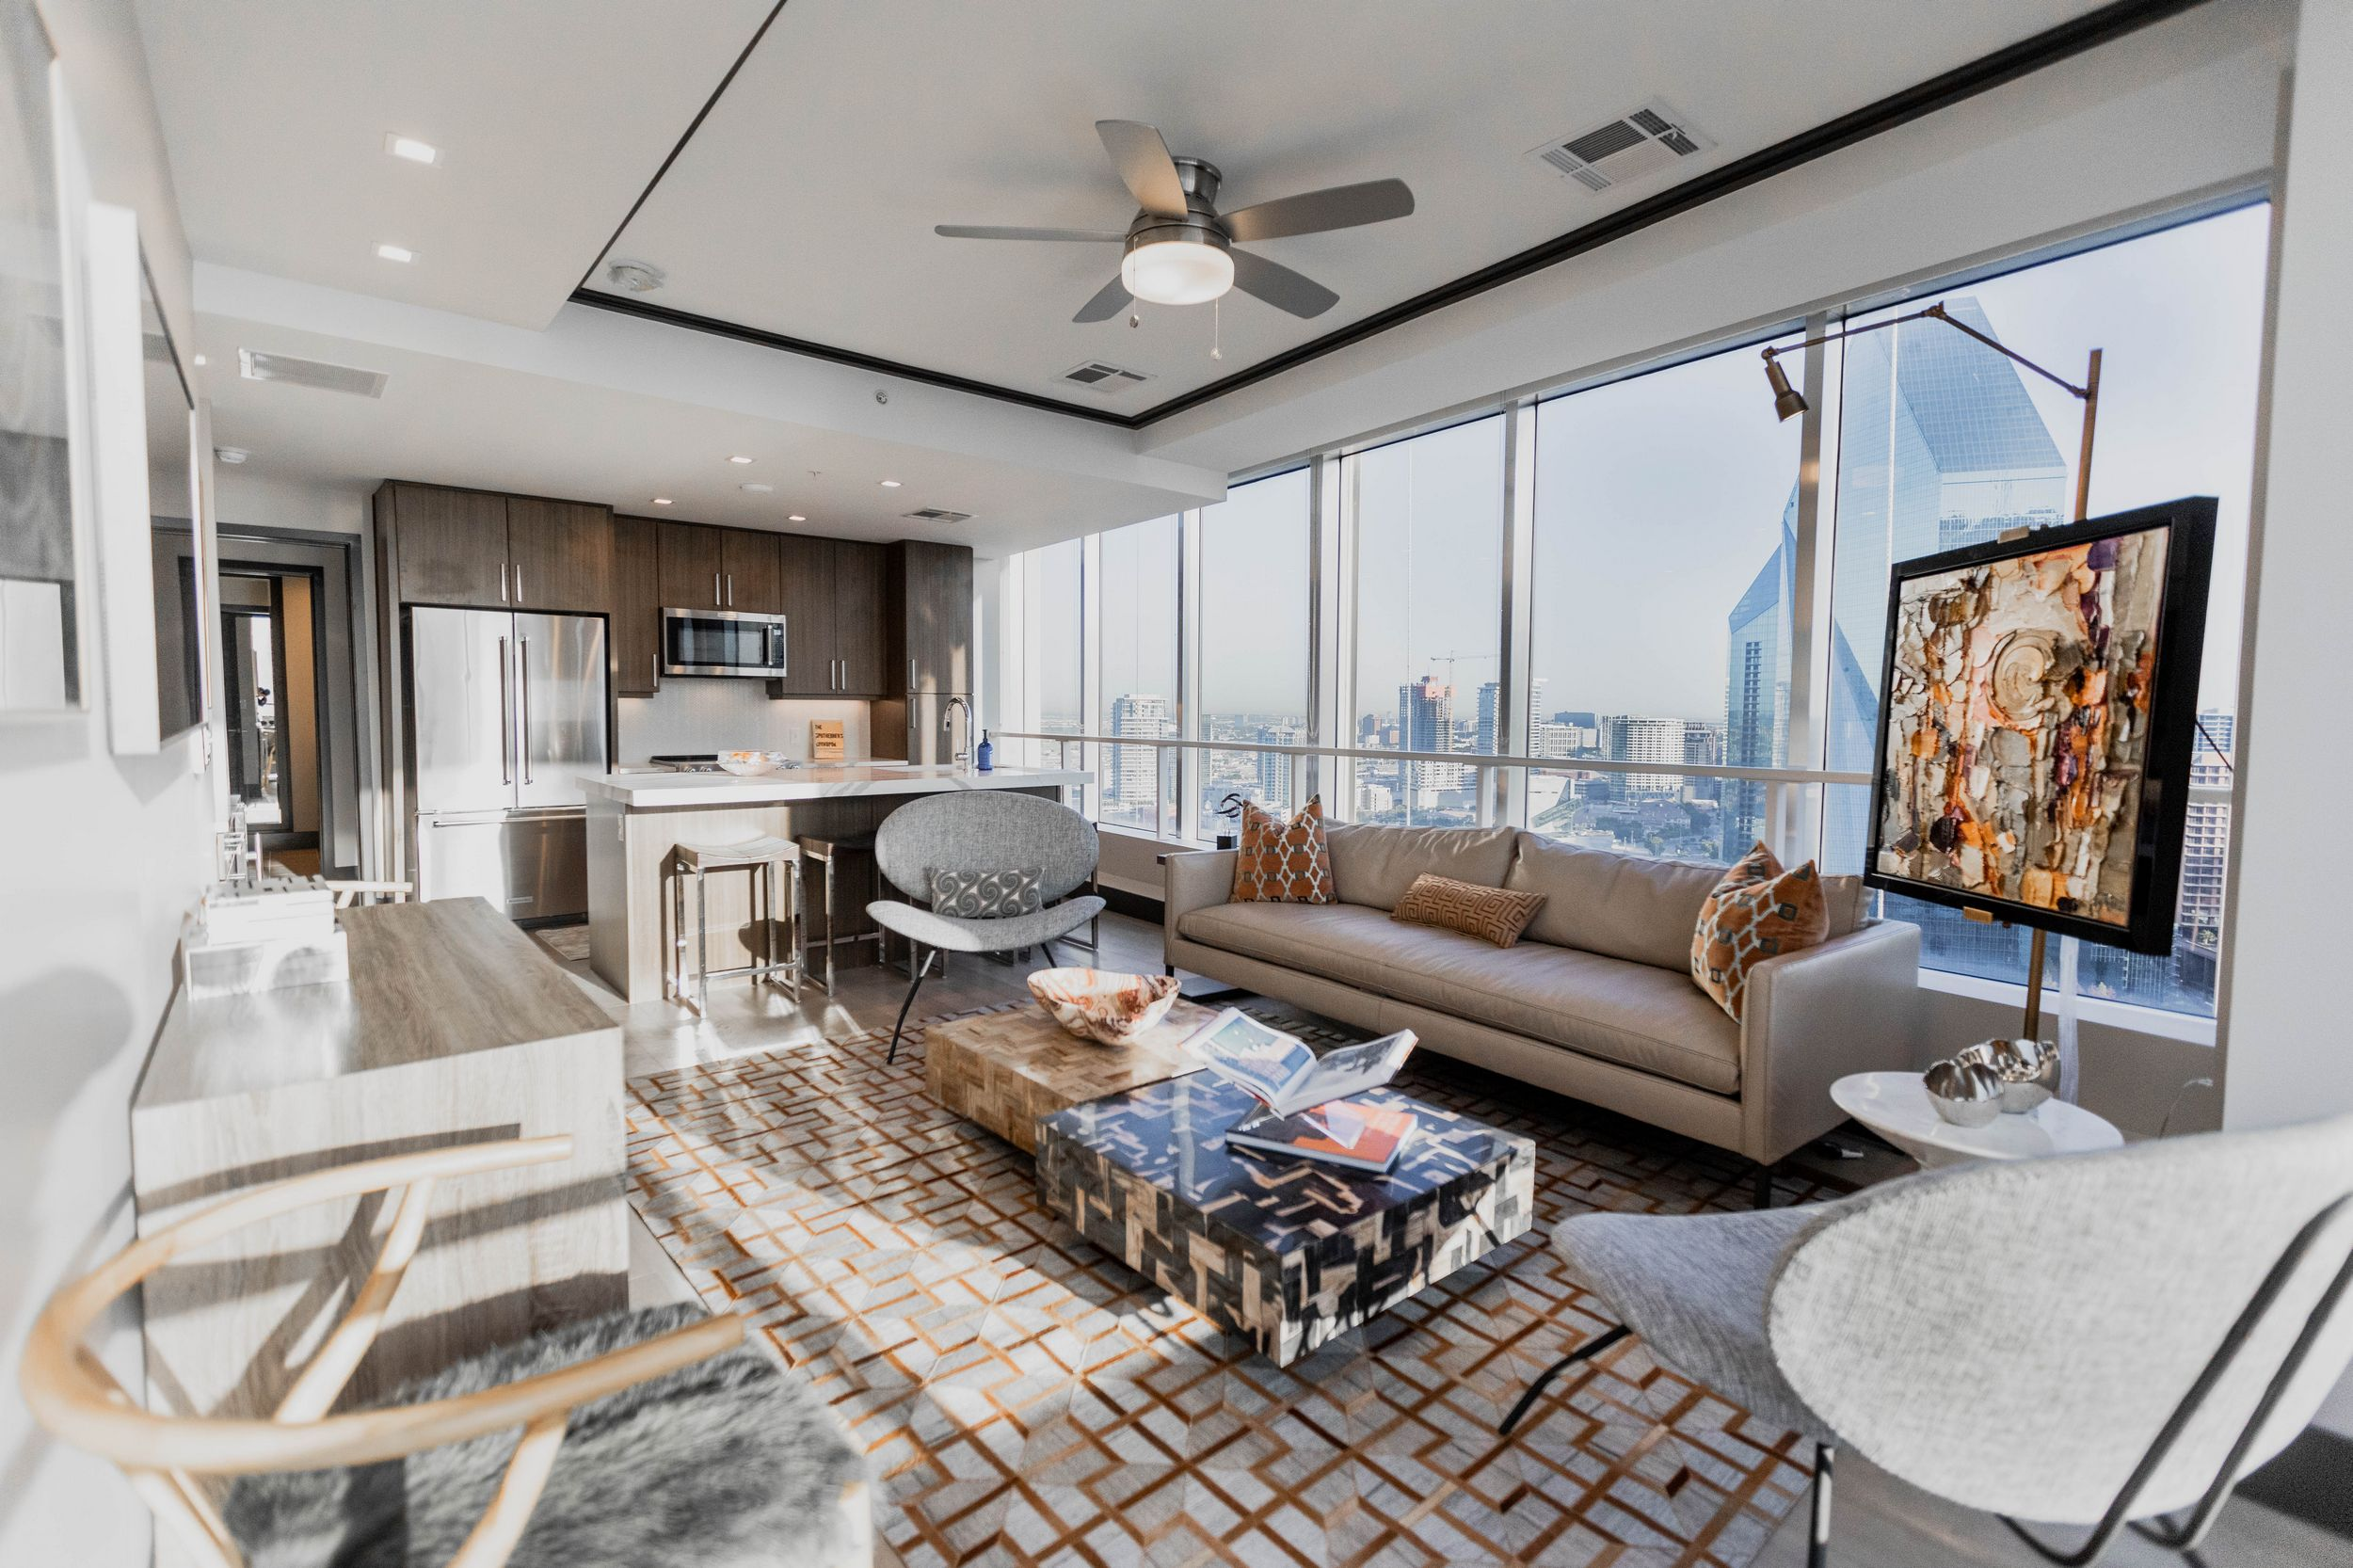 apartment living room and kitchen with floor-to-ceiling windows